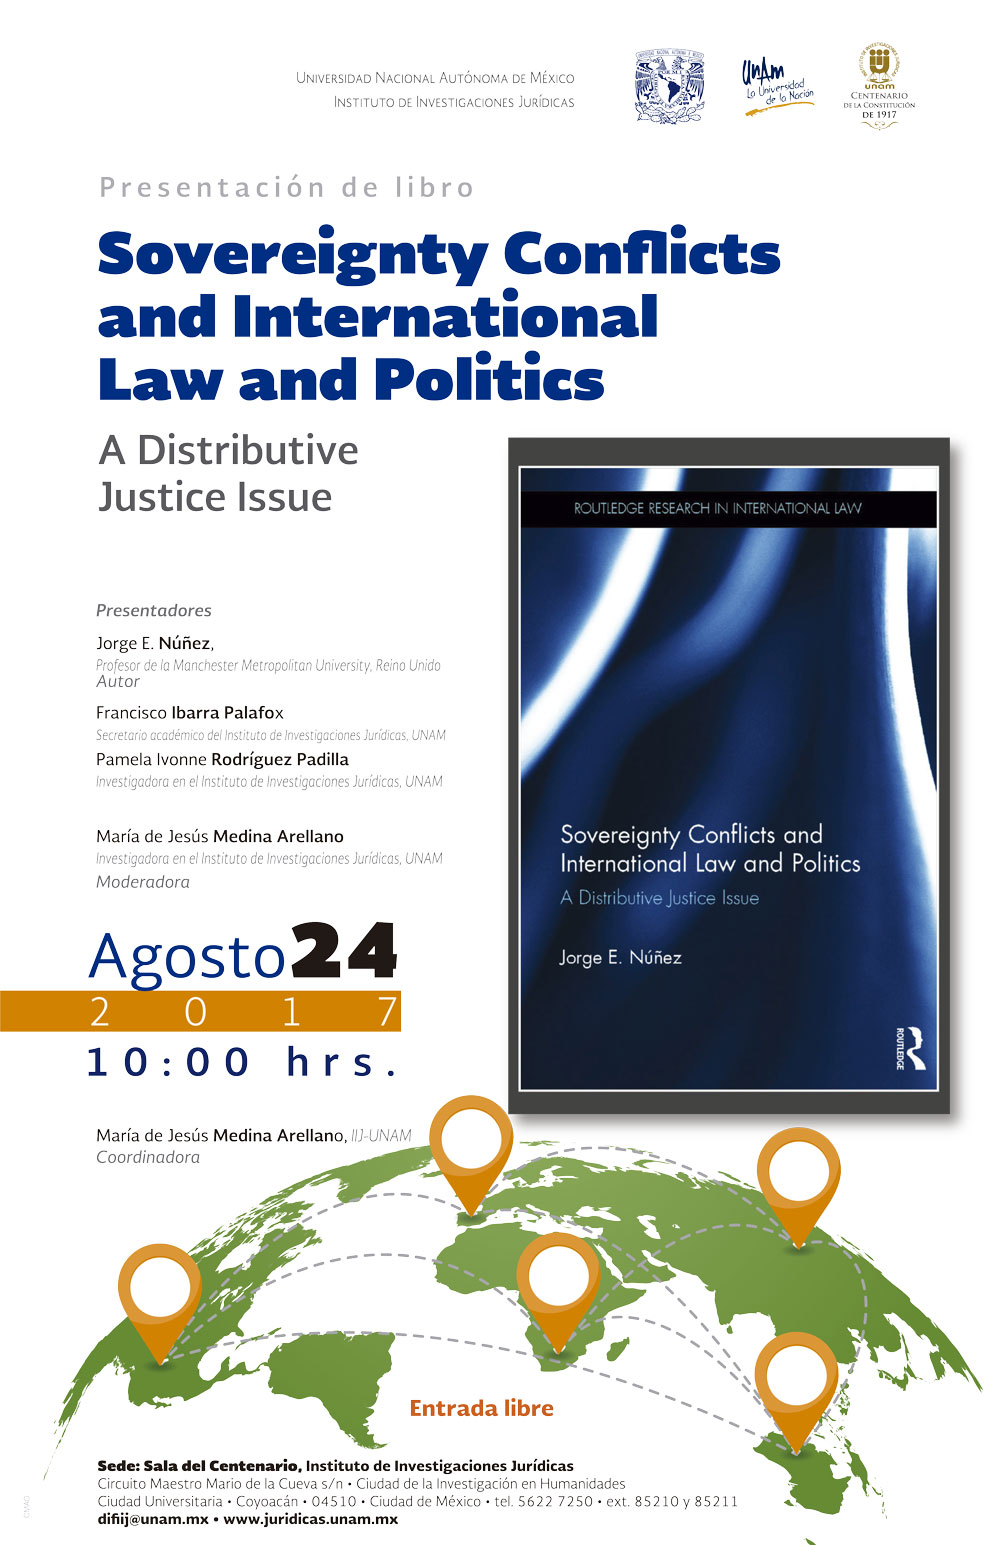 Sovereignty conflicts  and international law  and politics. A distributive justice issue